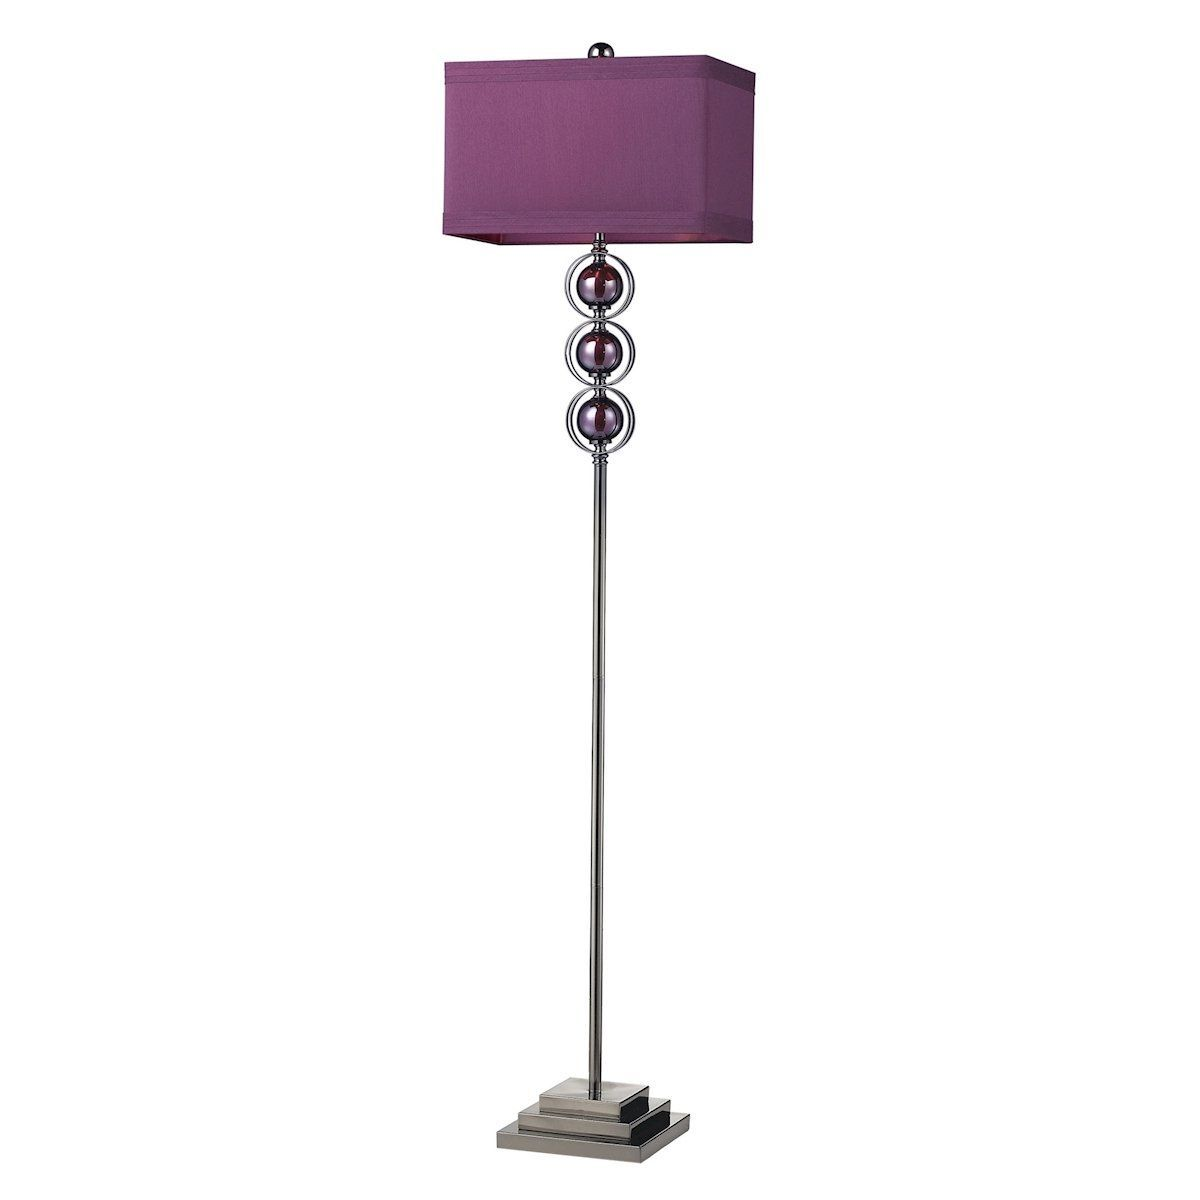 Alva contemporary floor lamp in black nickel and purple by dimond alva contemporary floor lamp in black nickel and purple by dimond lighting aloadofball Gallery